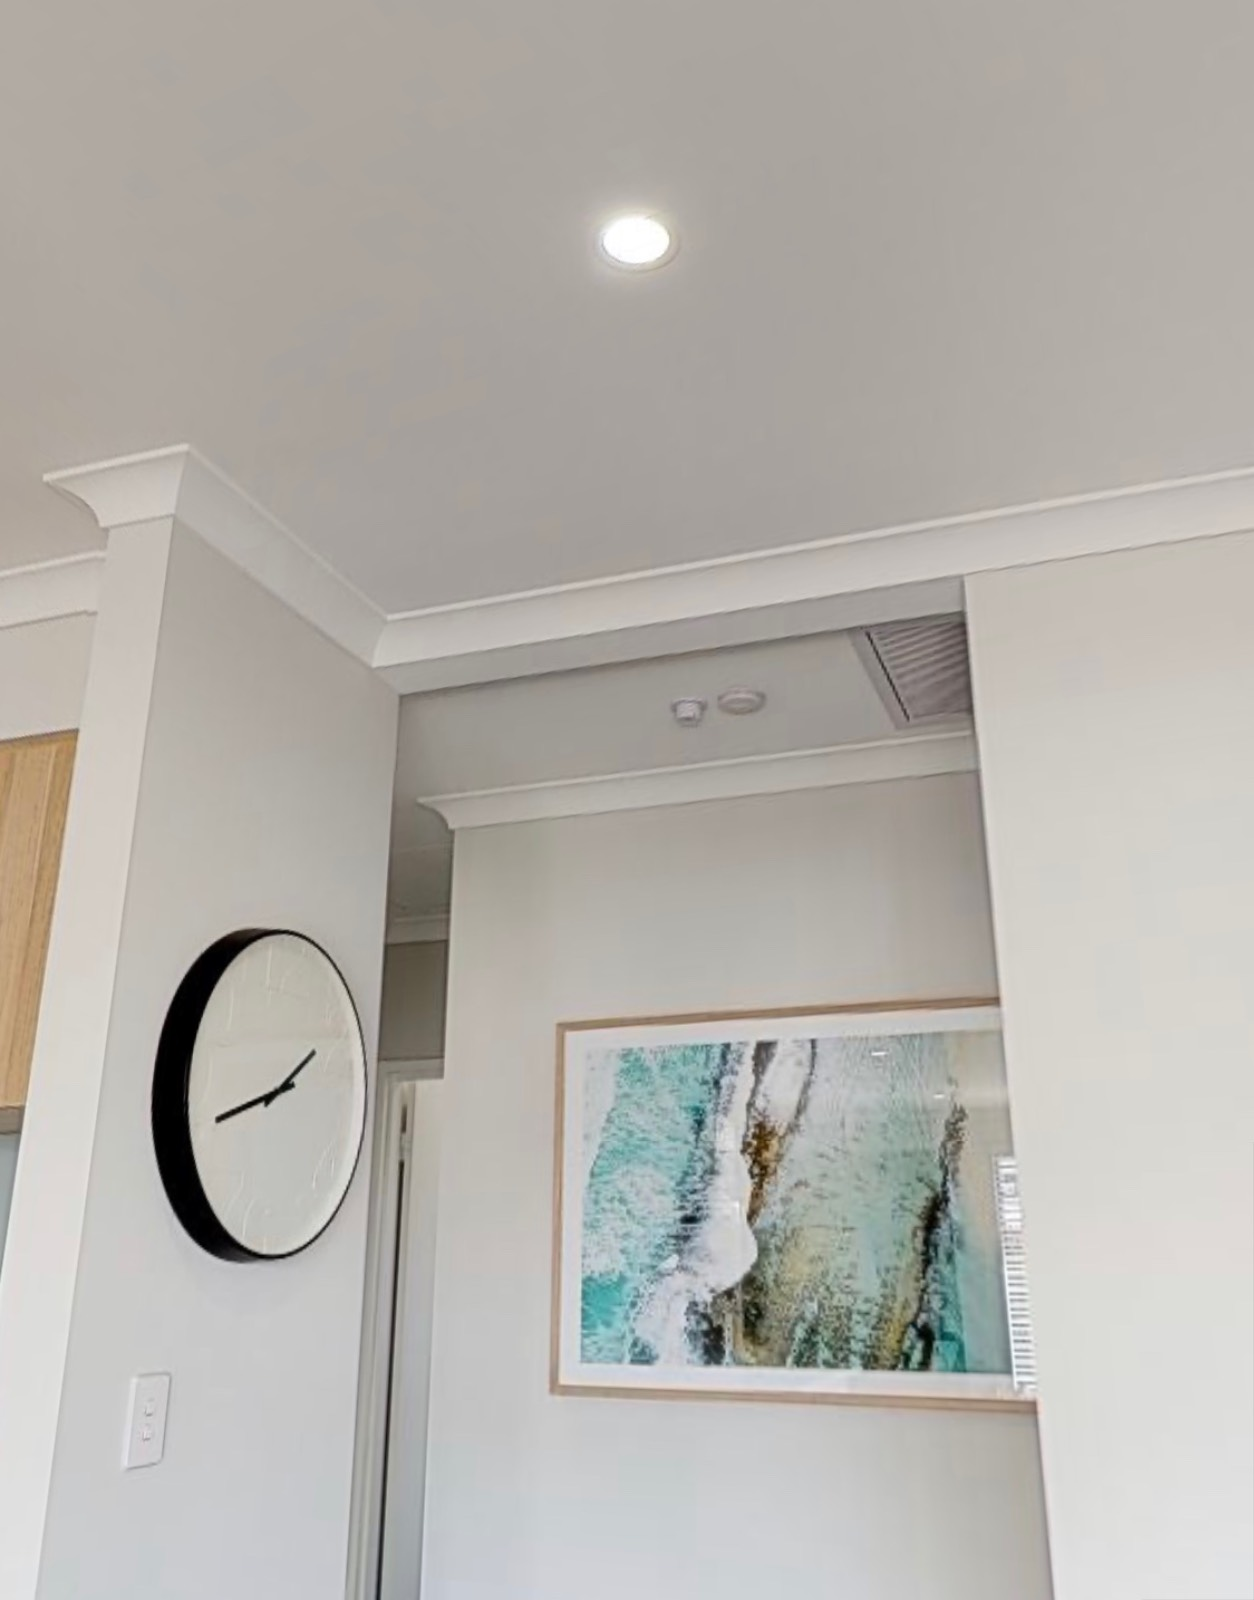 Can Someone Please Tell Me the Purpose of a Corner Soffit